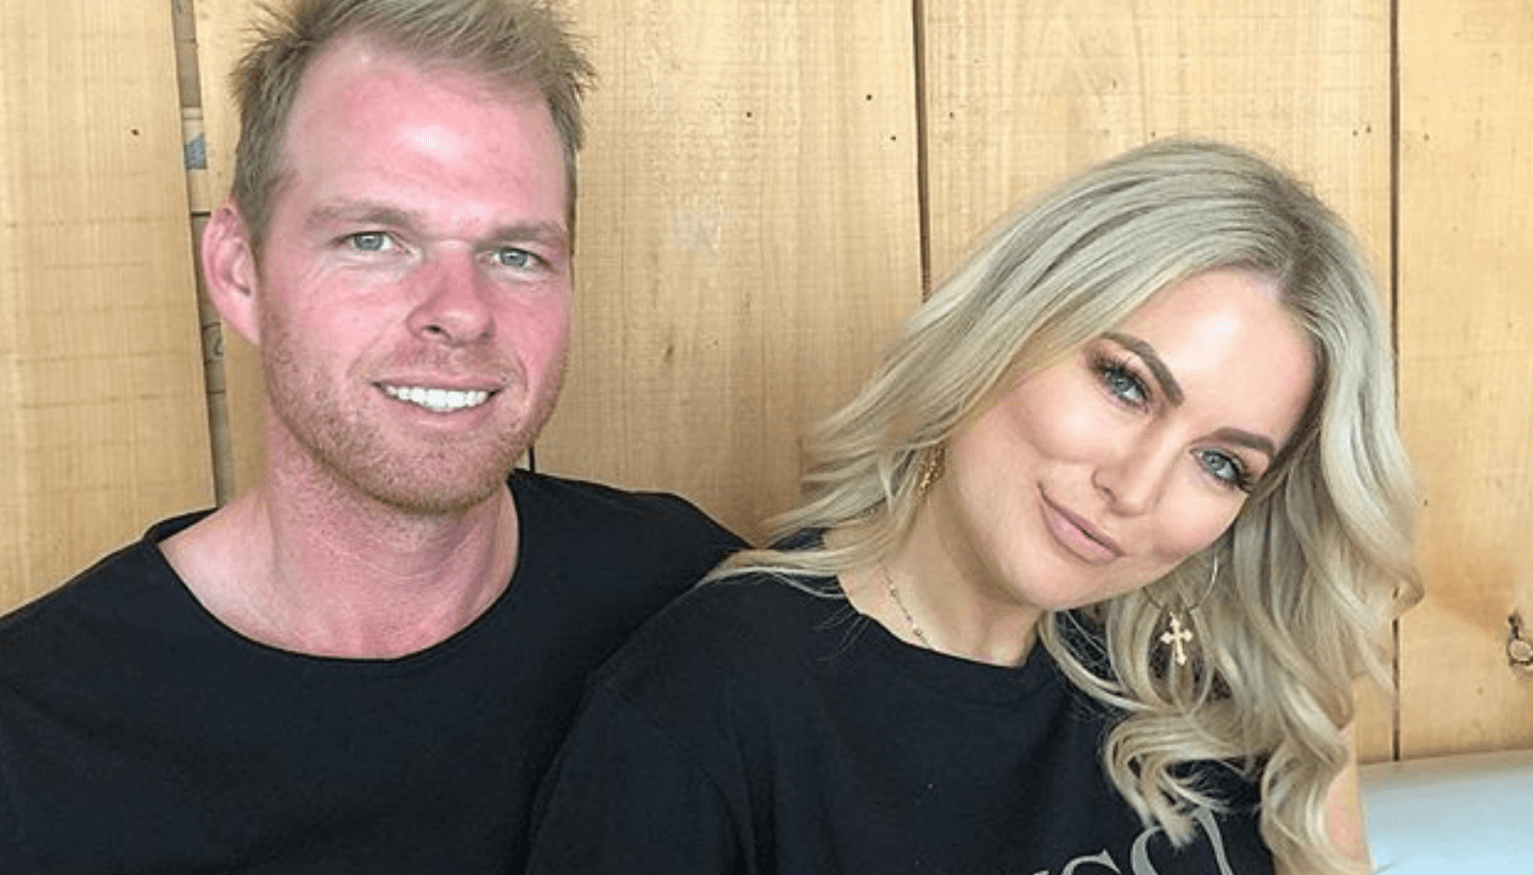 Megan and jarrod pregnant and dating